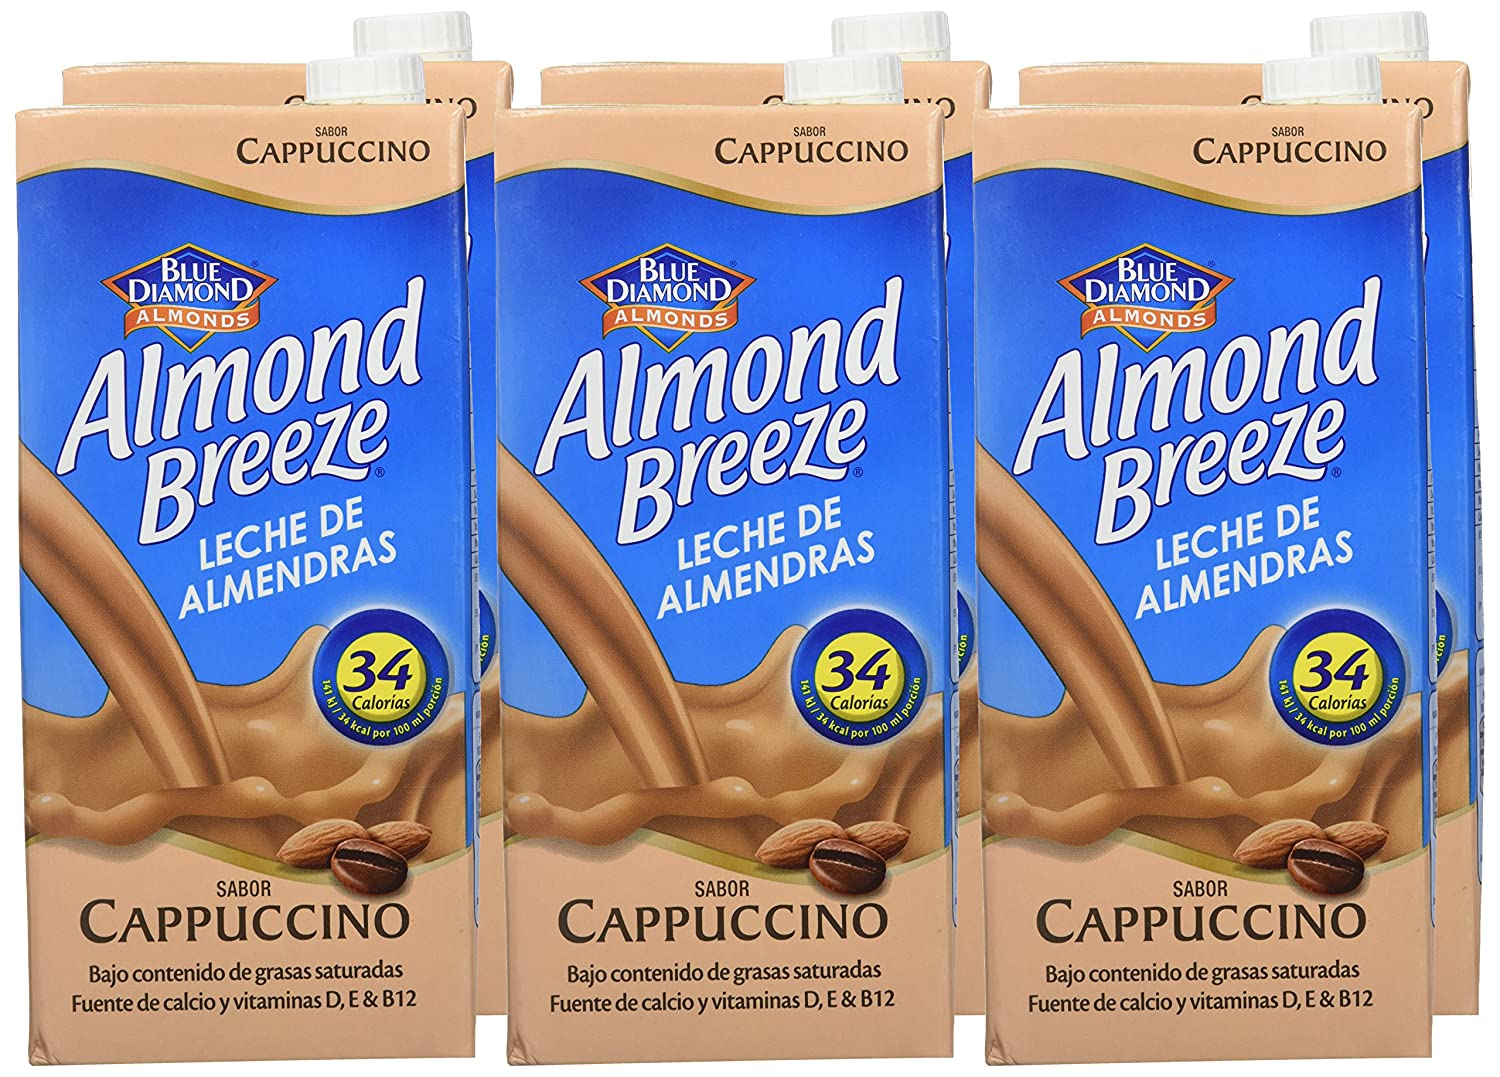 Almond Breeze Bebida de Almendra Cappuccino - Paquete de 6 x 1000 ml - Total: 6000 ml: Amazon.es: Amazon Pantry